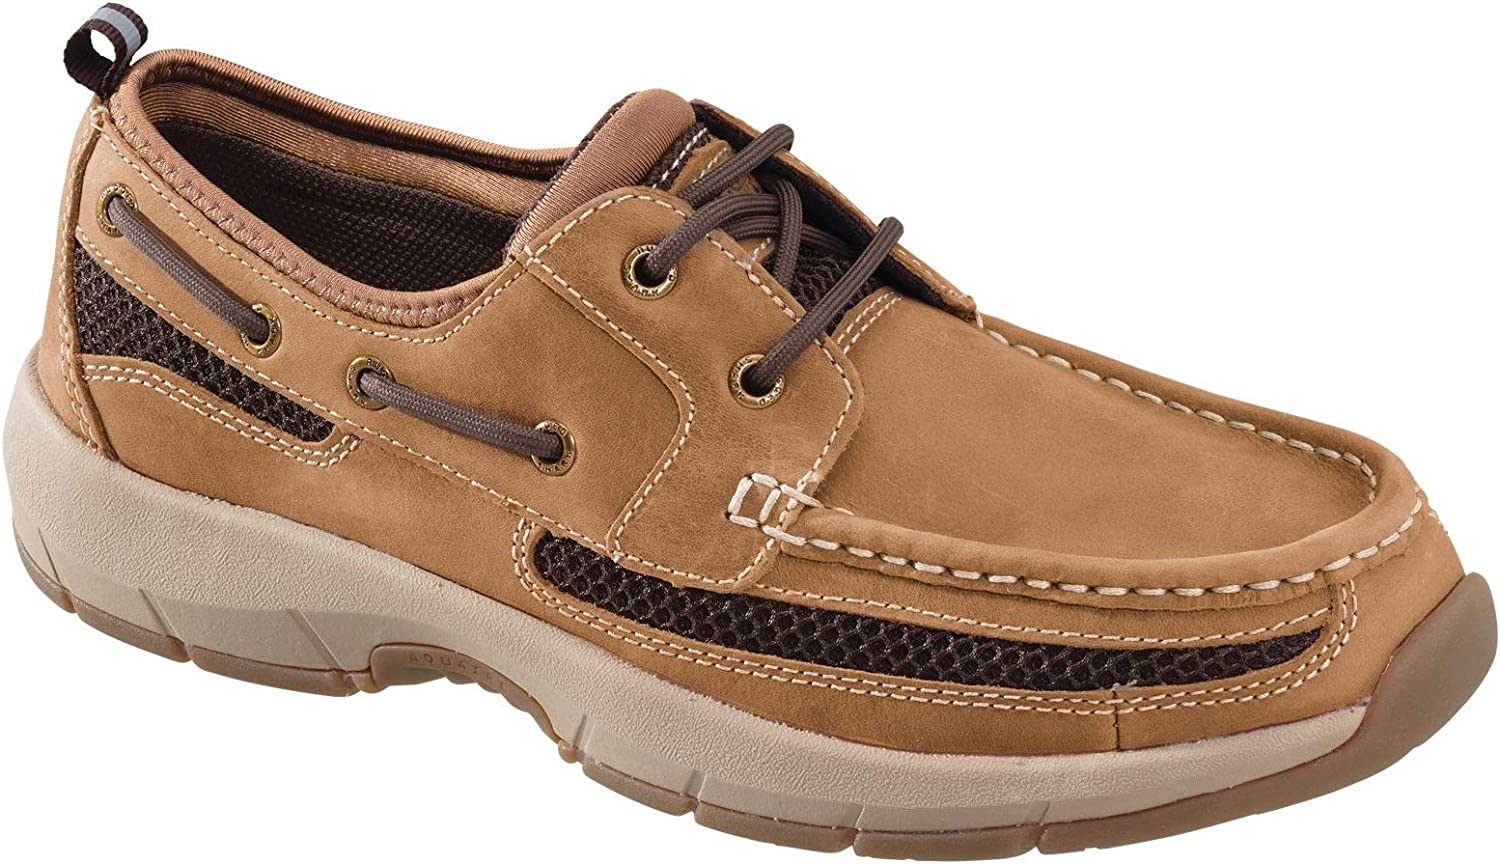 Rugged Shark Men's Boat Shoe, Premium Leather and Comfort, Meridian, Men's Size 8 to 13